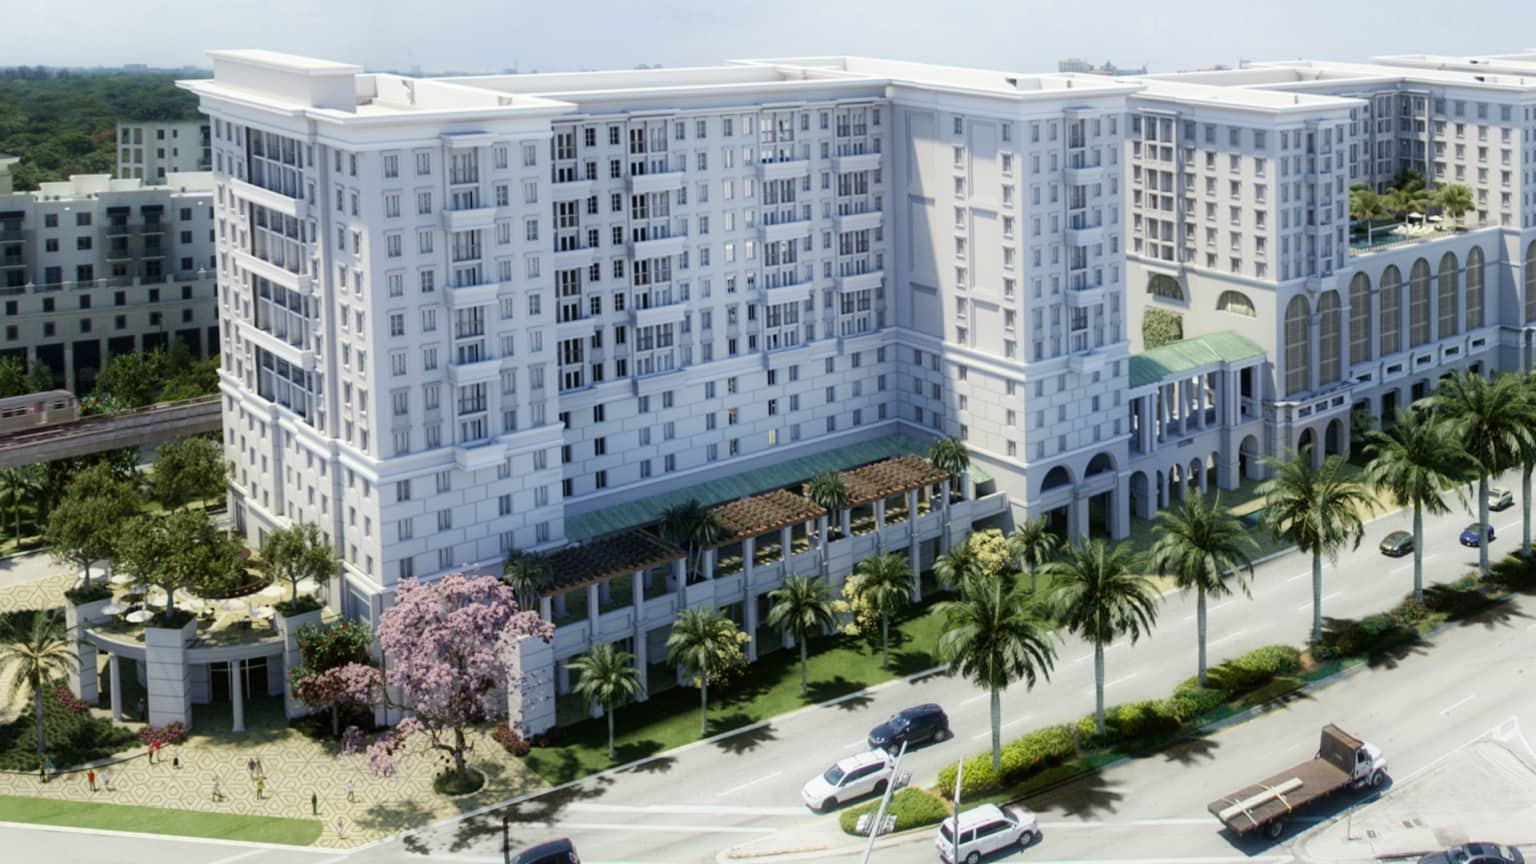 A photographic illustration of the exterior of the Life Time Living in Coral Gables, Florida